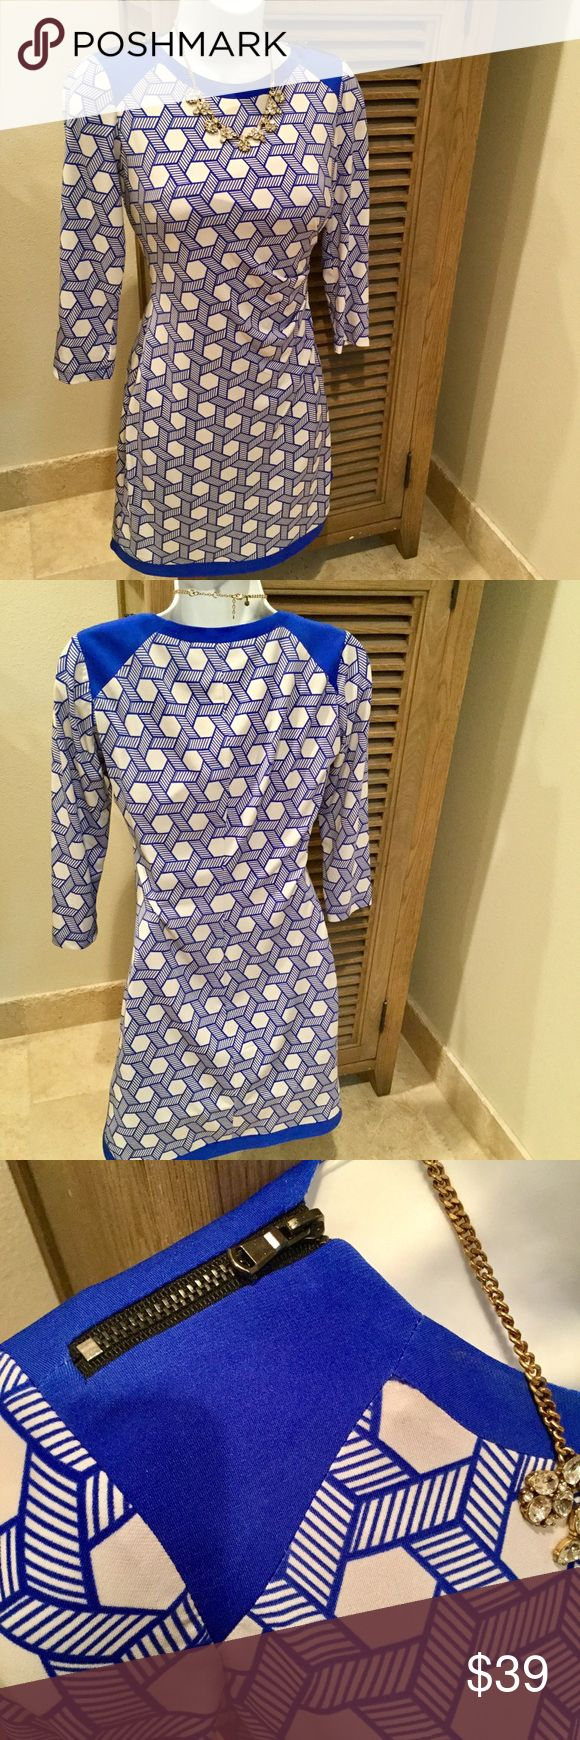 Donna Morgan Print Dress This Donna Morgan 3/4 sleeve dress is in perfect condition with zipper details on shoulder and flattering gather at the waist. Donna Morgan Dresses